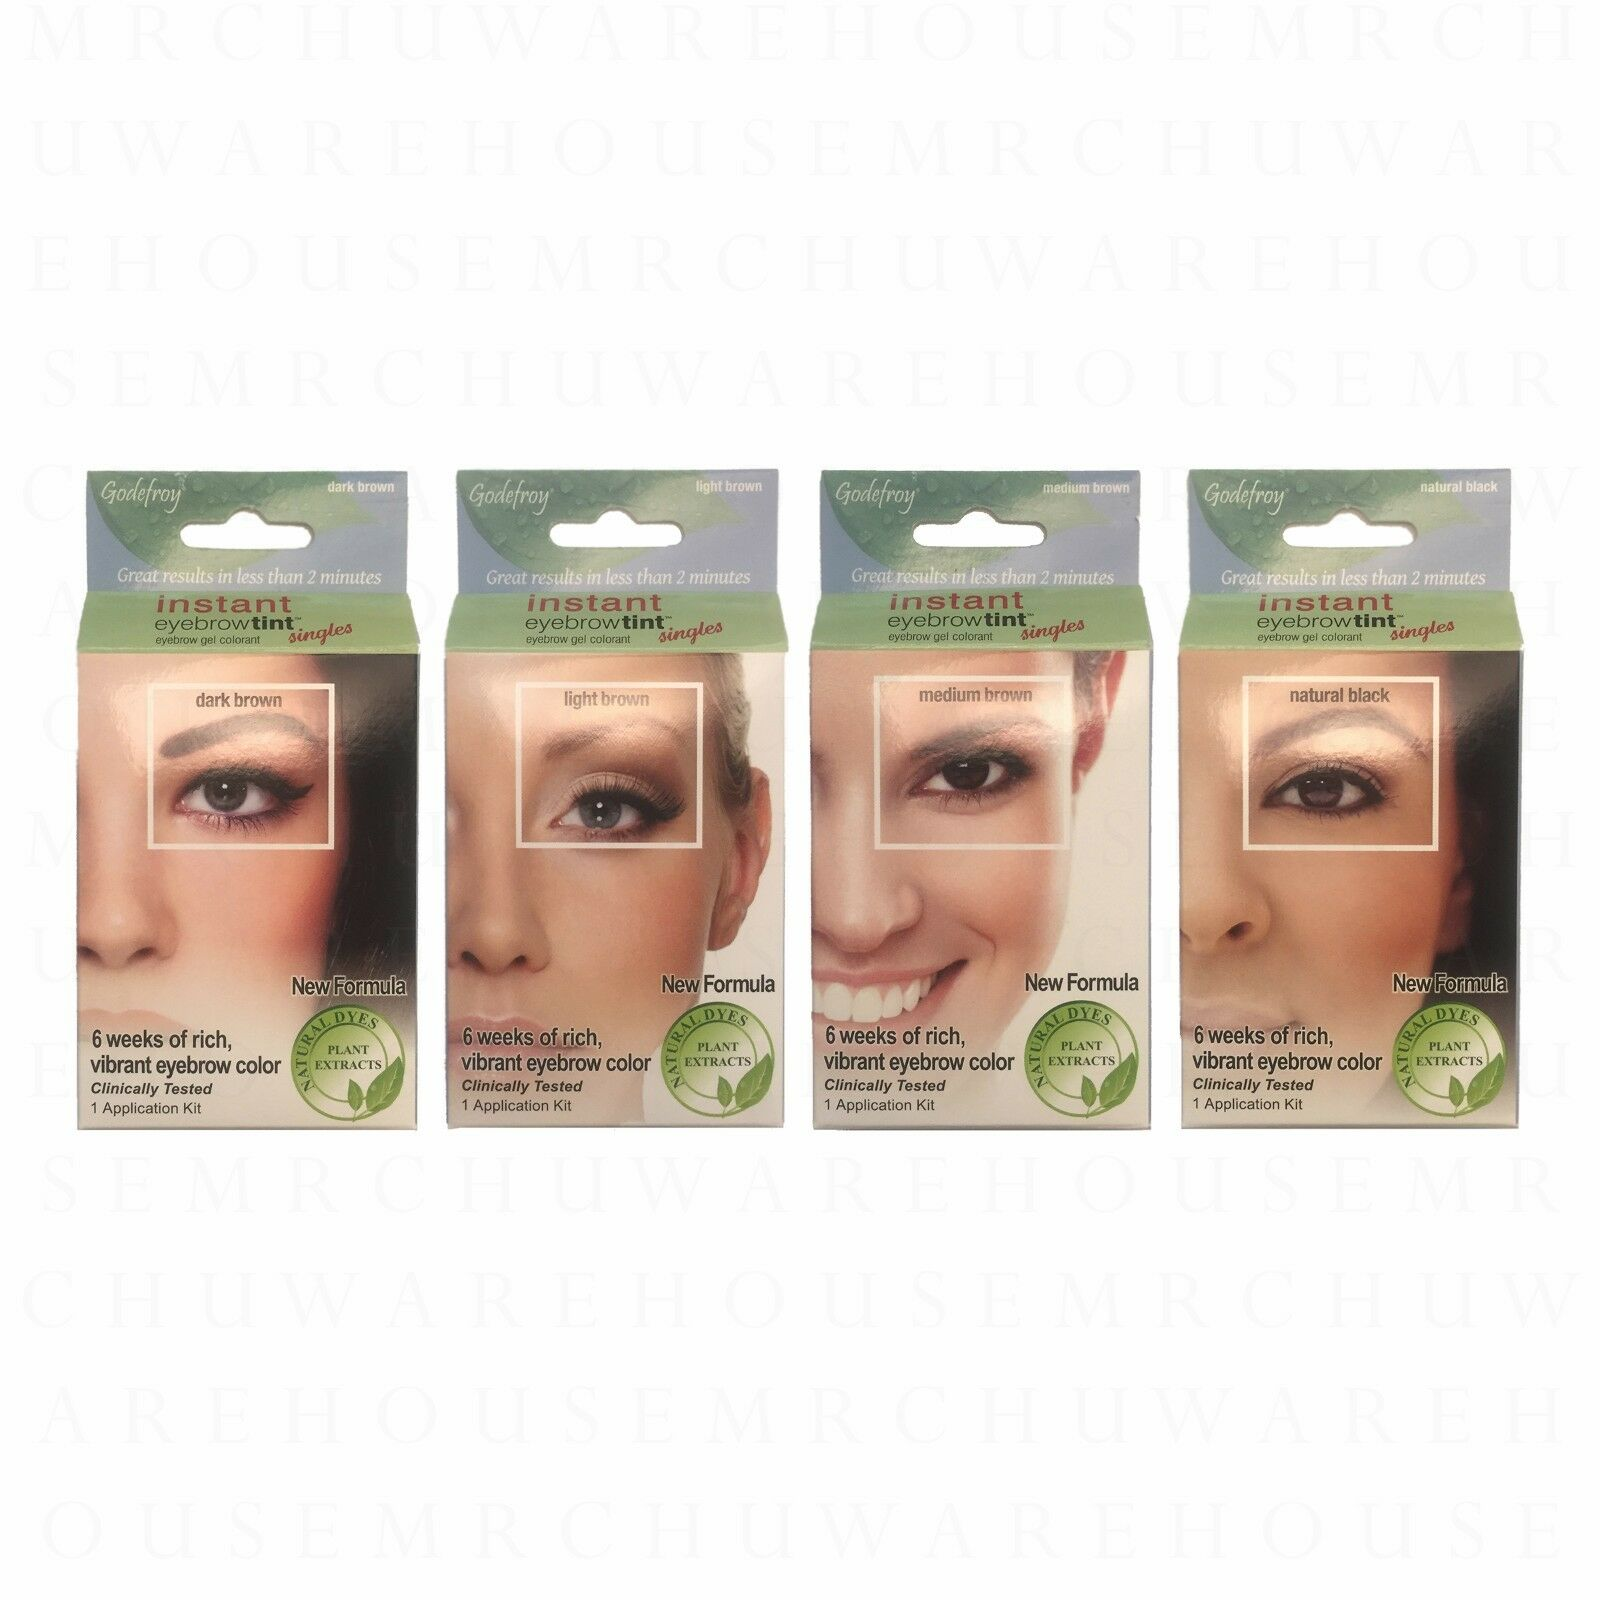 Godefroy Instant Eyebrow Tint Dark Brown 1 Application Kit Ebay